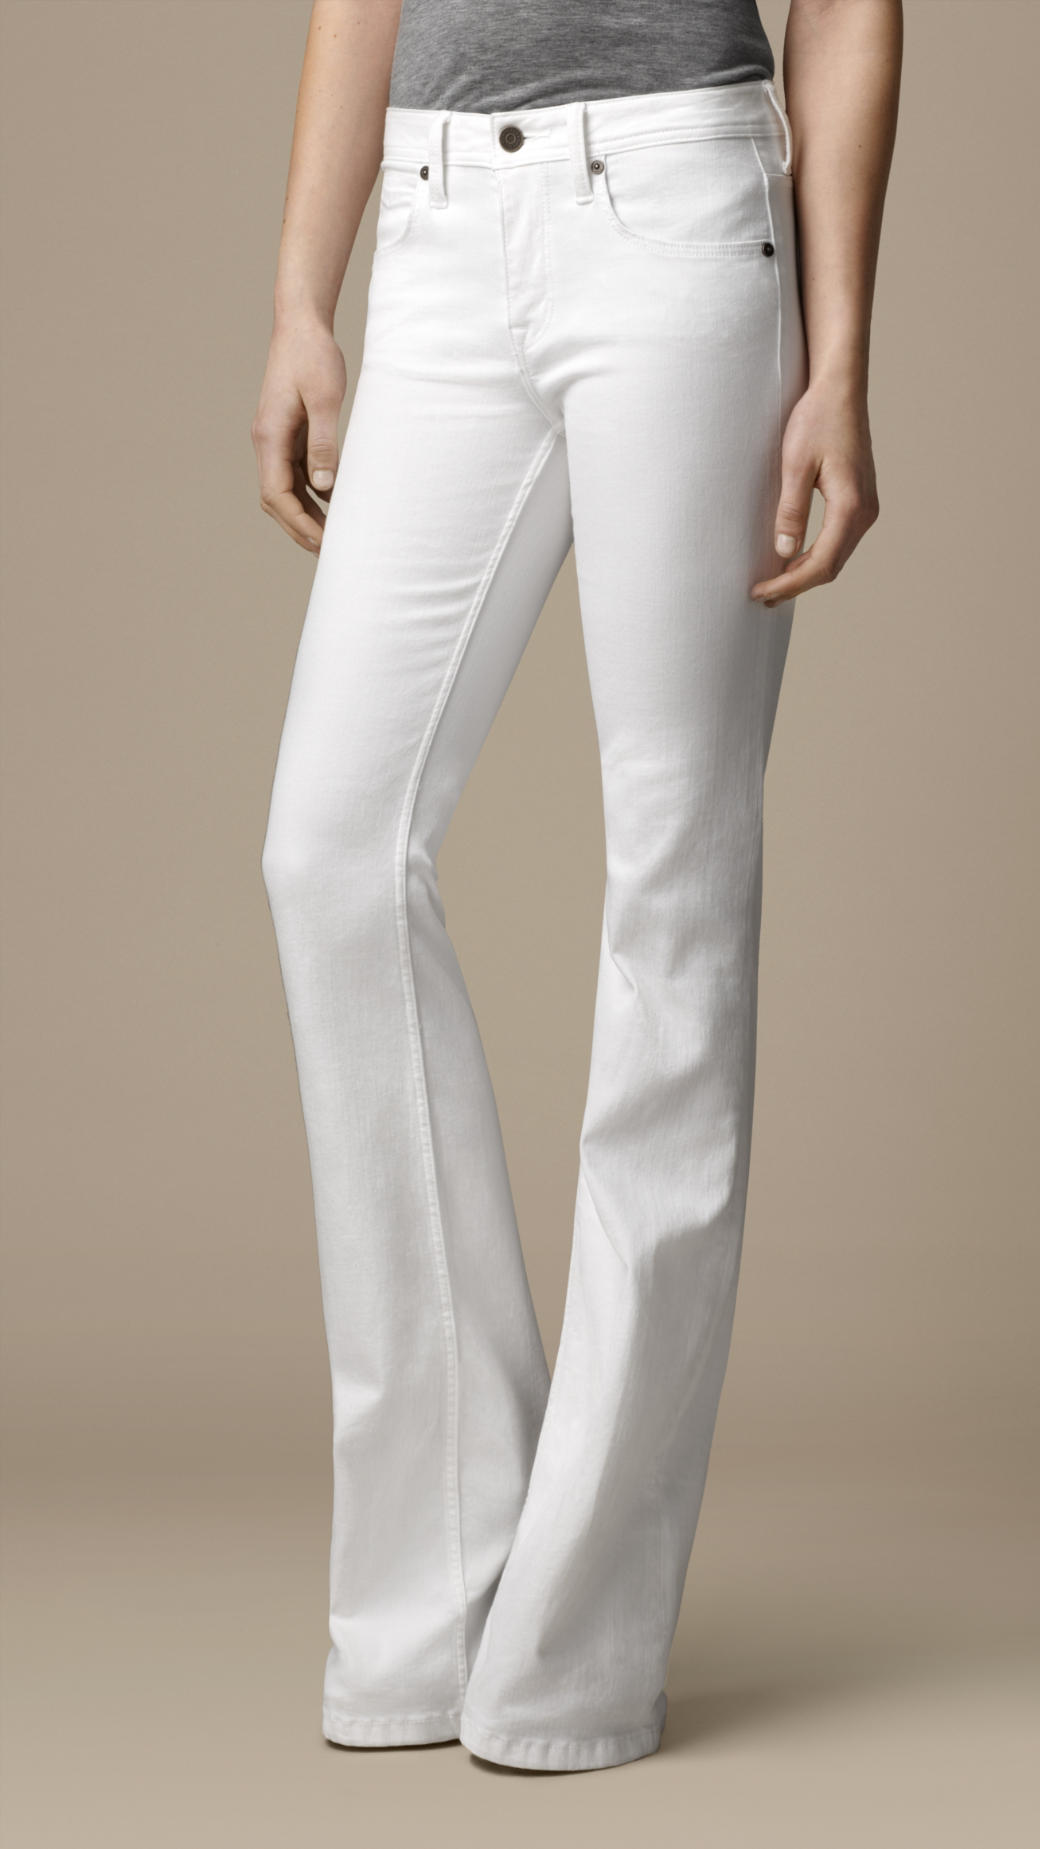 Burberry Hempton Optic White Bootcut Jeans in White | Lyst